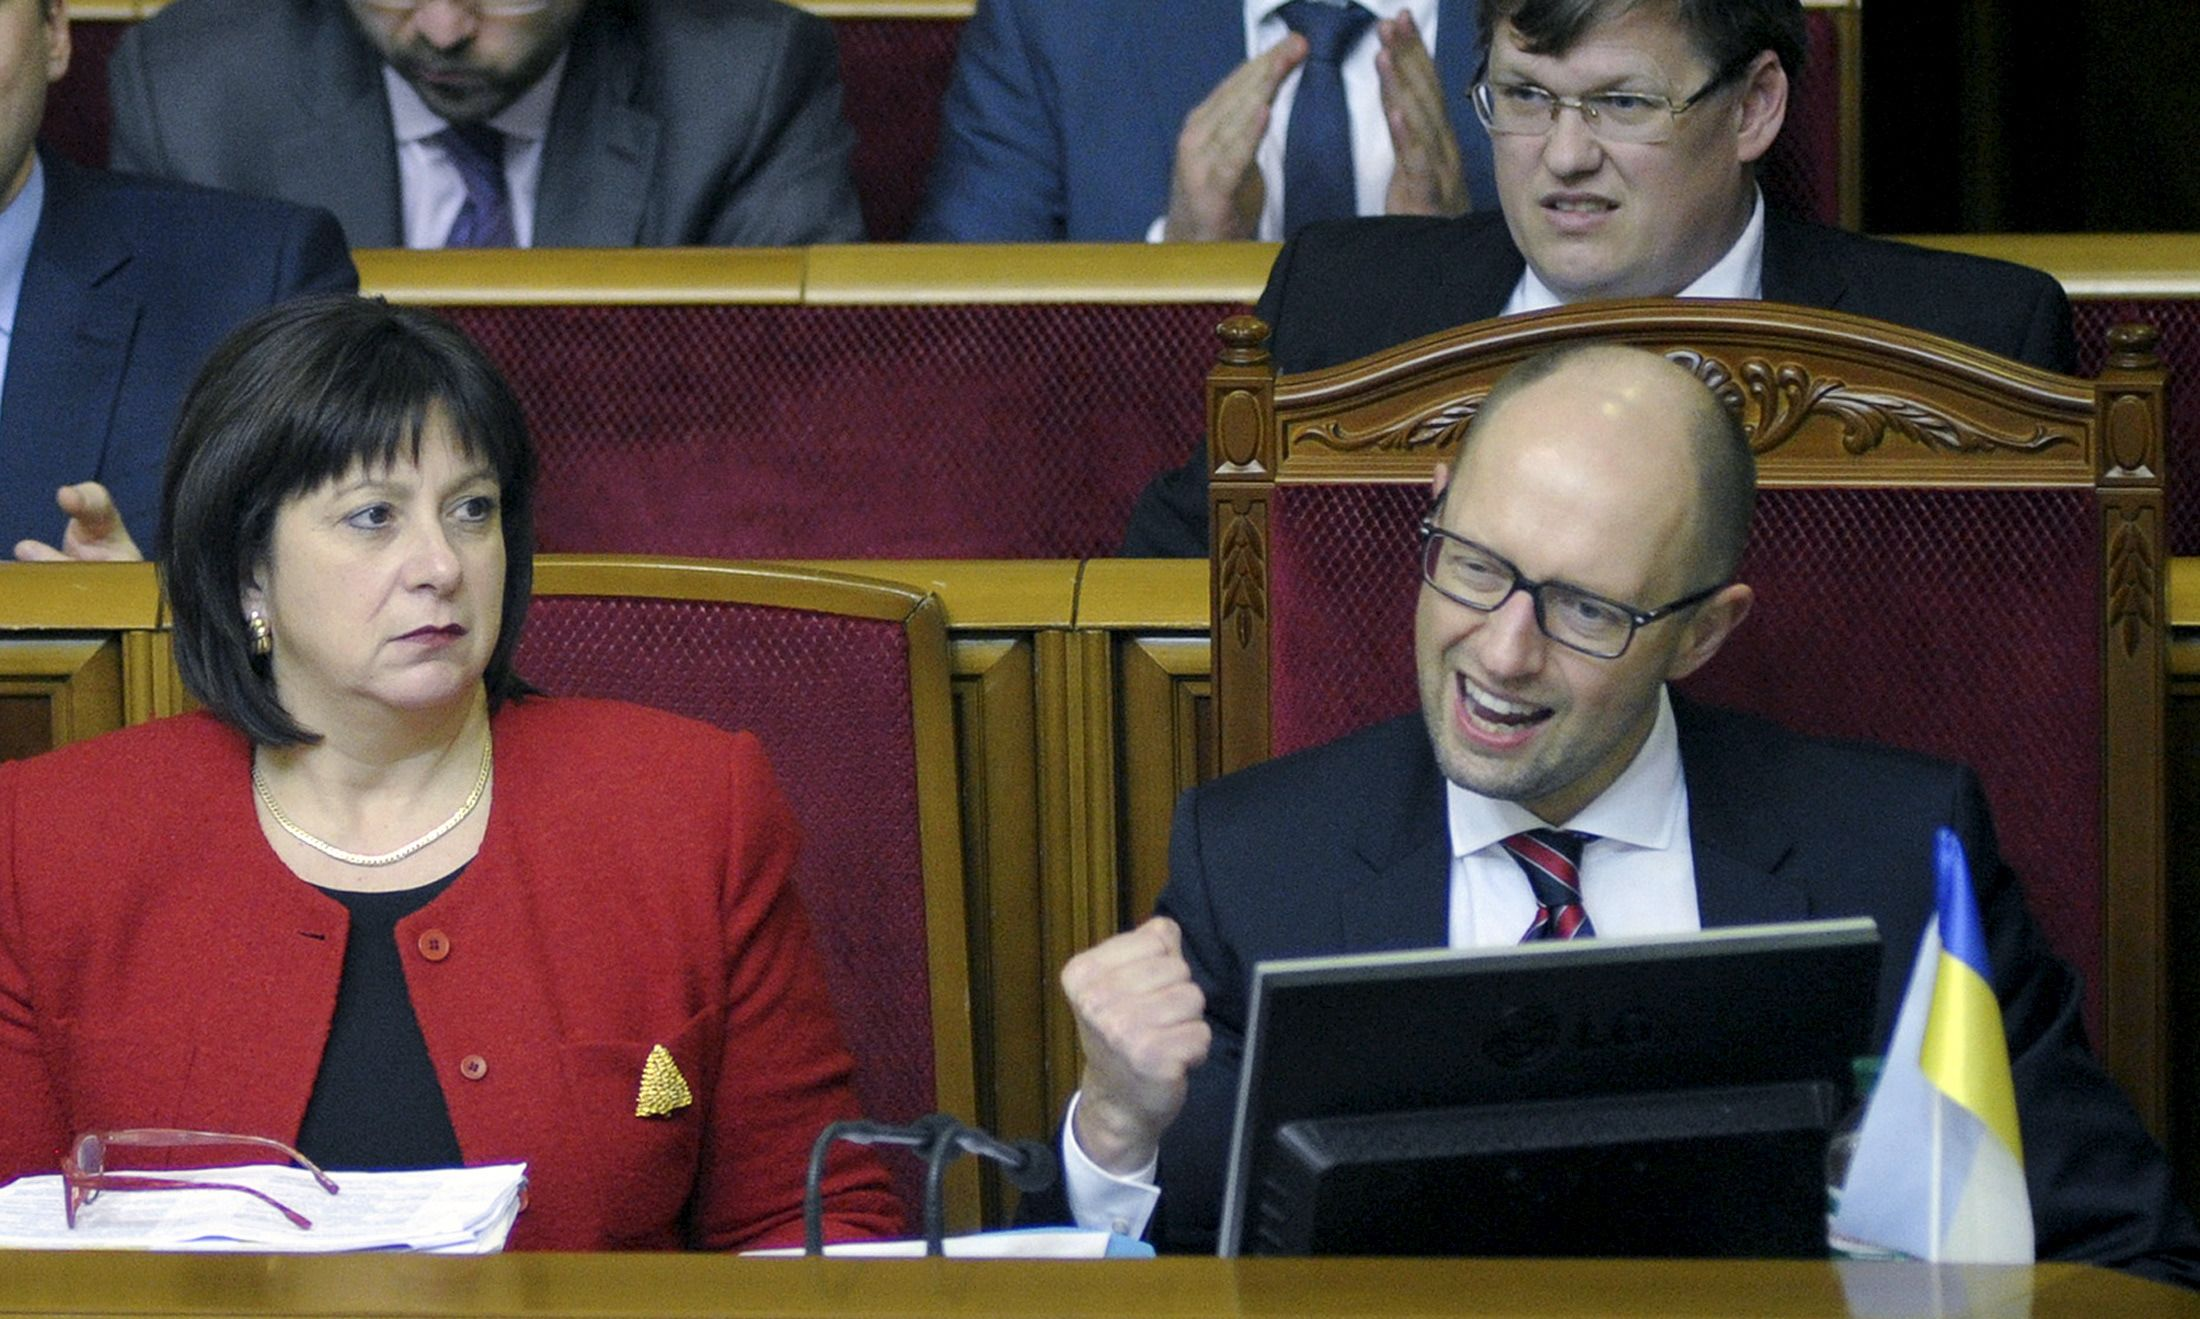 Yatsenyuk punches the air in celebration in parliament